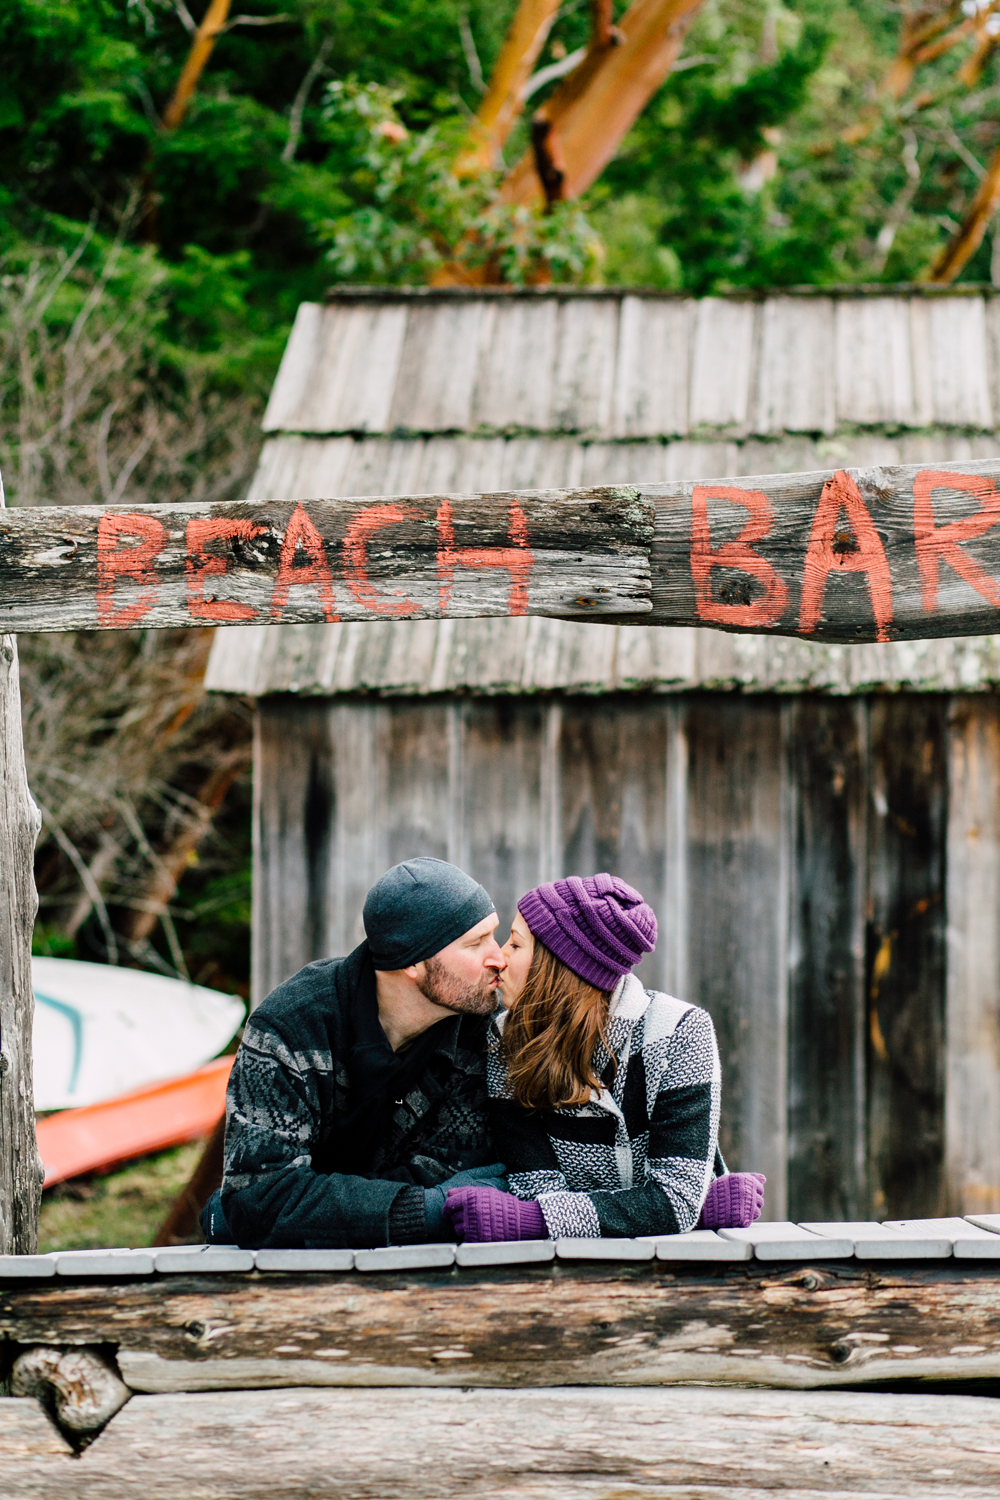 027-decatur-san-san-juan-islands-engagement-photographer-katheryn-moran-mandy-mike.jpg